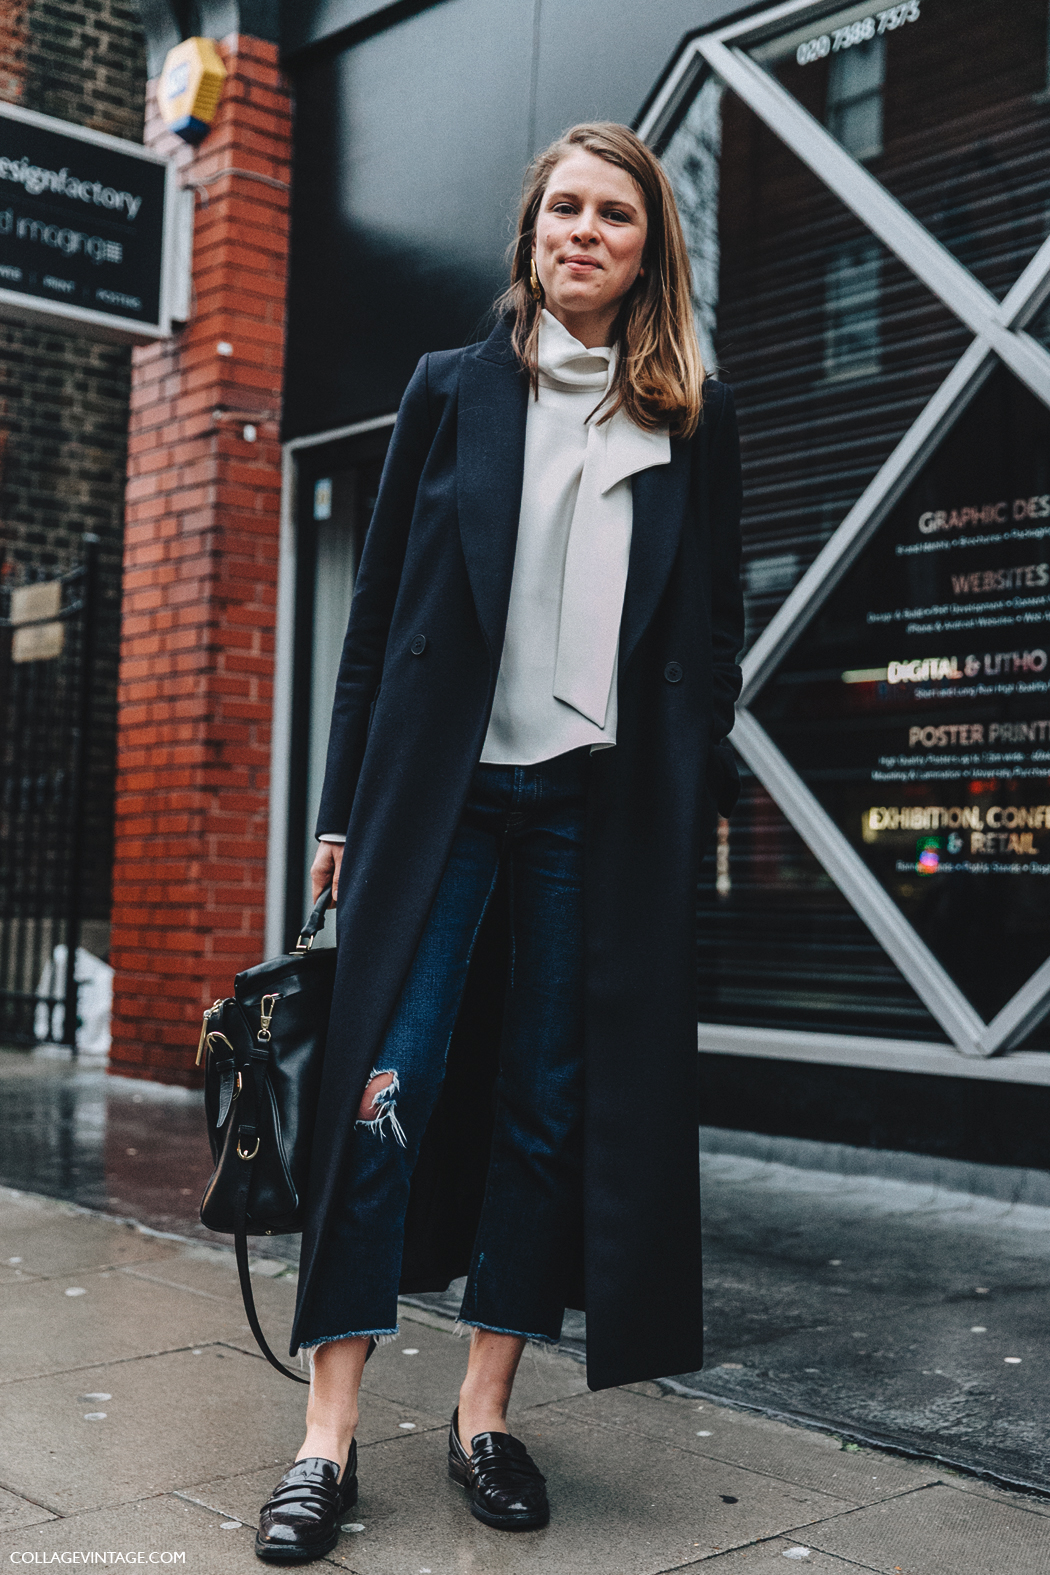 LFW-London_Fashion_Week_Fall_16-Street_Style-Collage_Vintage-Jeans-1